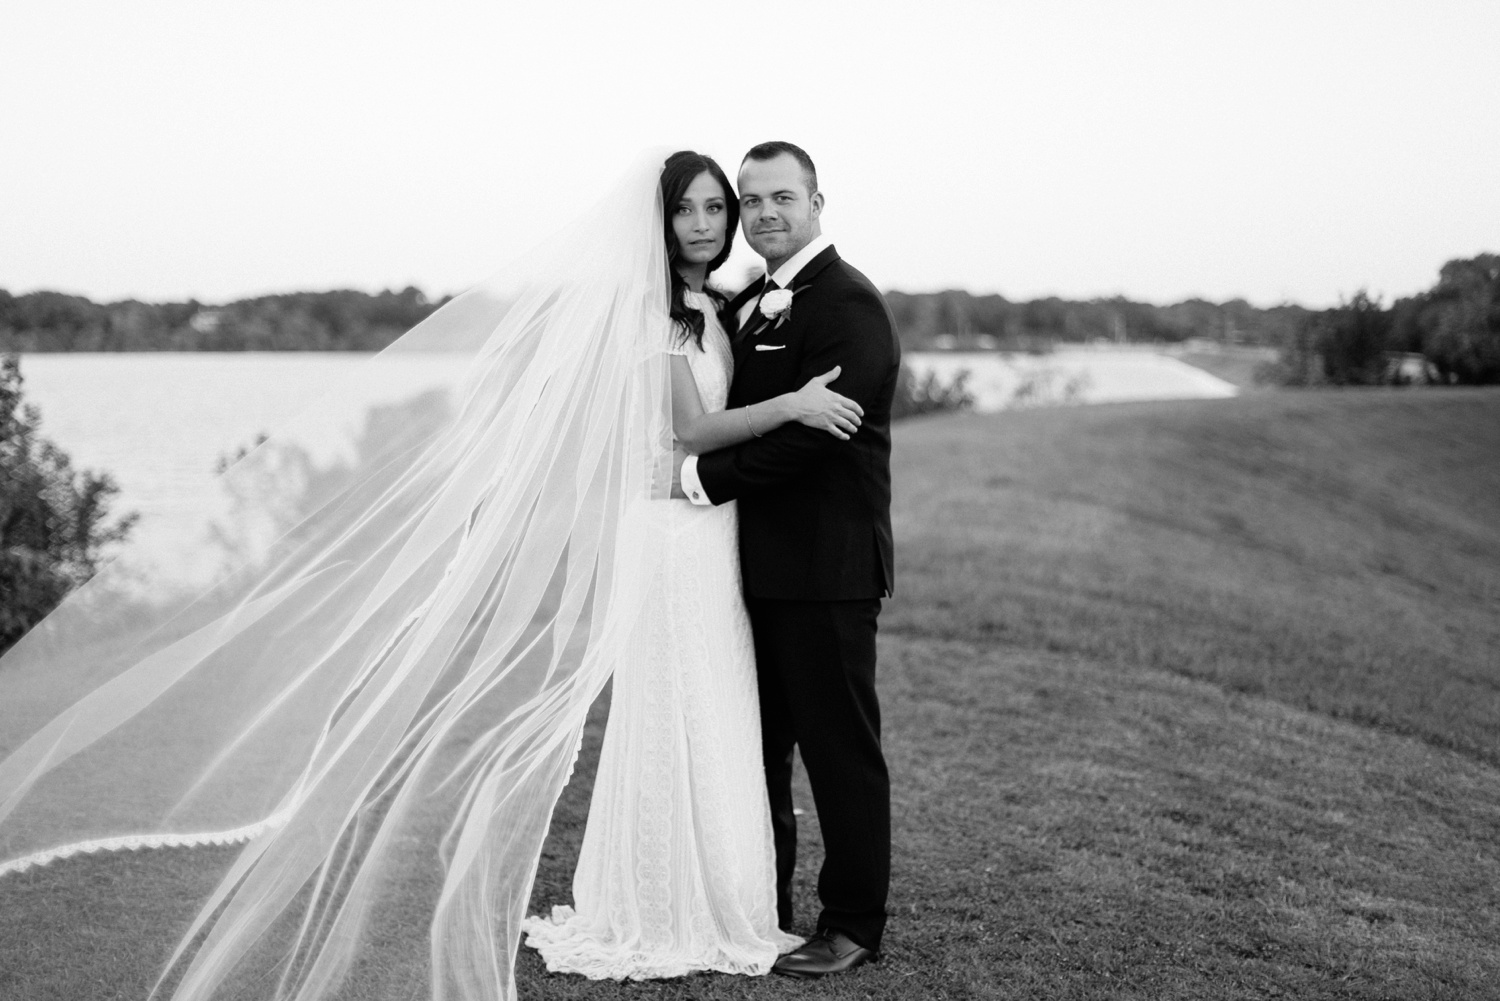 Kadee + Tyler | a raw, emotional wedding at the Filter Building on White Rock Lake in Dallas, TX by North Texas Wedding Photographer, Rachel Meagan Photography 176